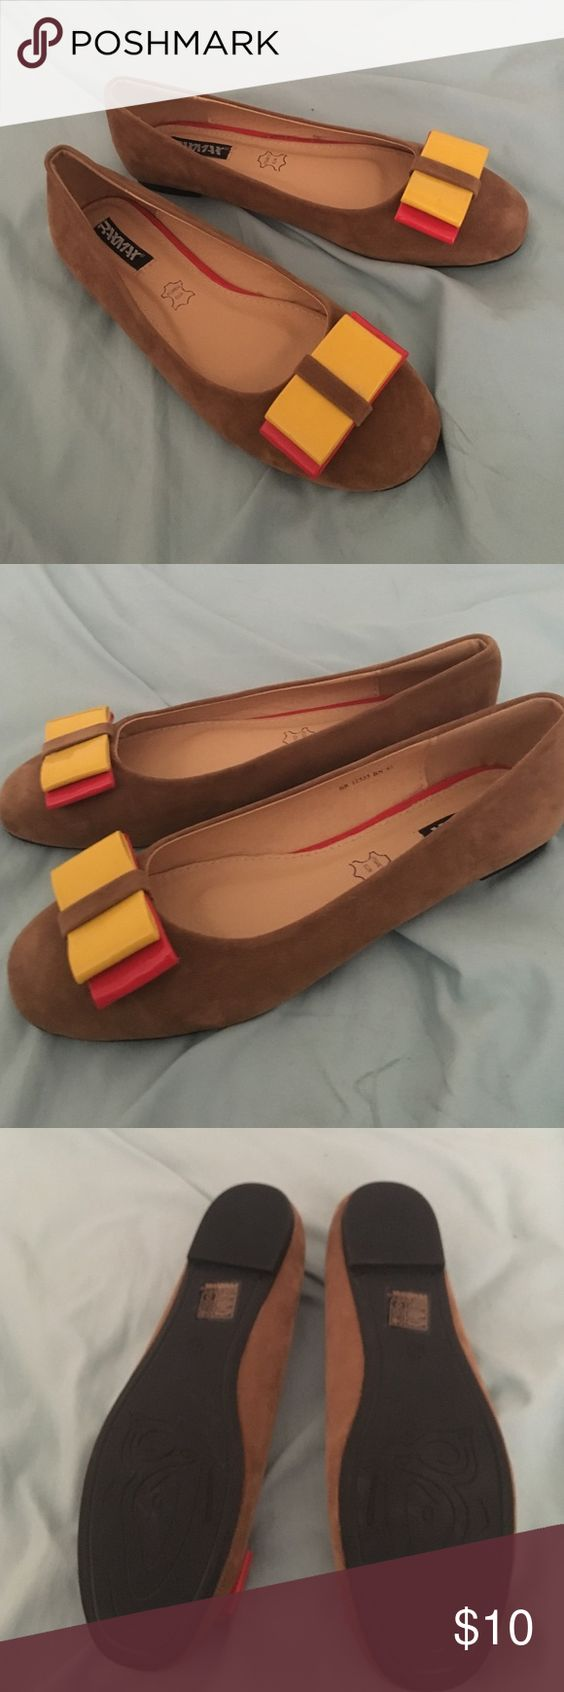 NEVER WORN❗️Ballet Flats from France Got these as a gift, but they're not my style. Came from a store in France, made with real leather and suede. Yellow and red bow. Never worn, brand new. Ask any and all questions. Shoes Flats & Loafers